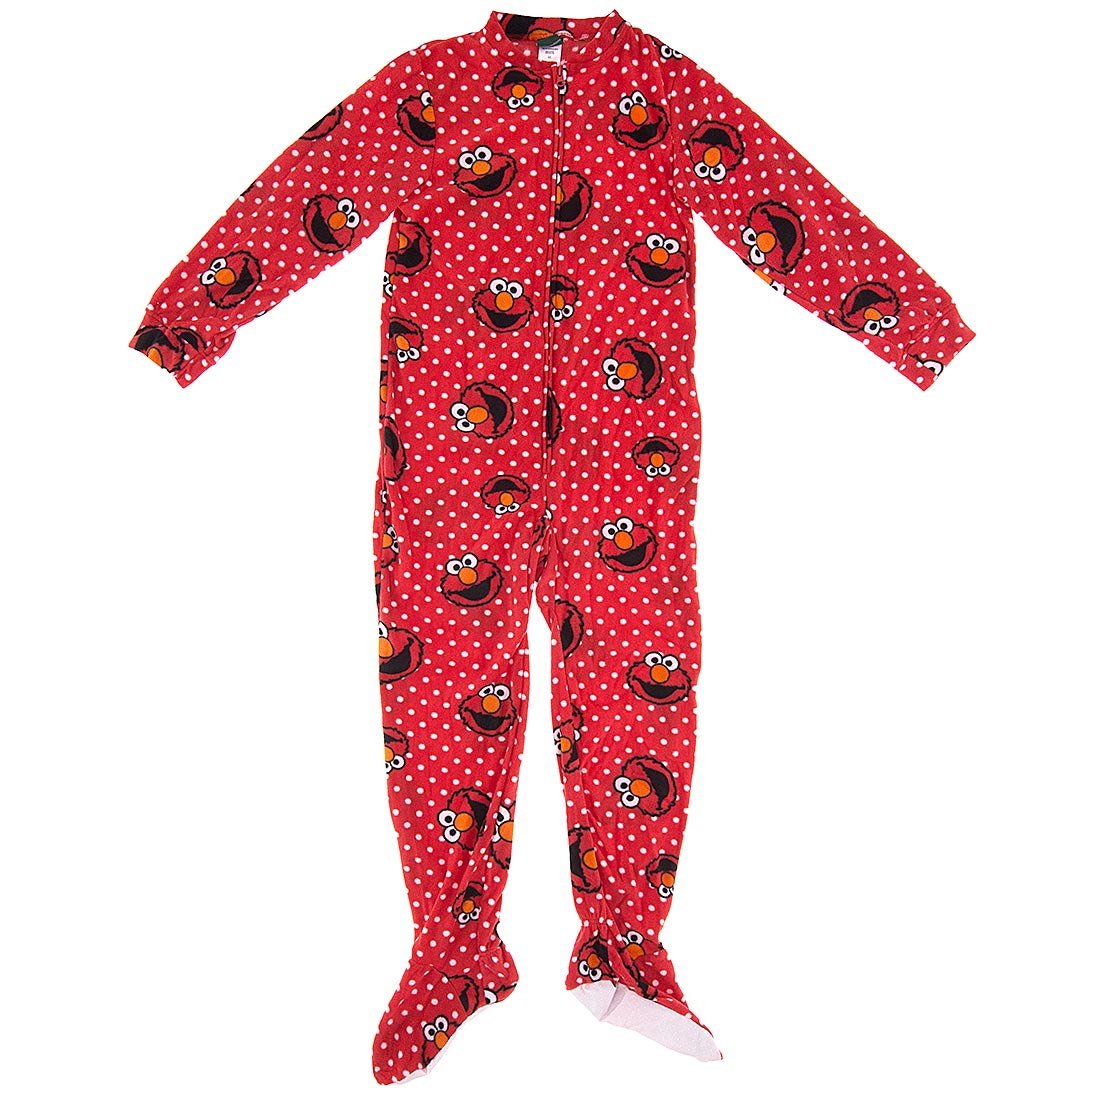 Pajamas clipart footie pajamas, Pajamas footie pajamas.